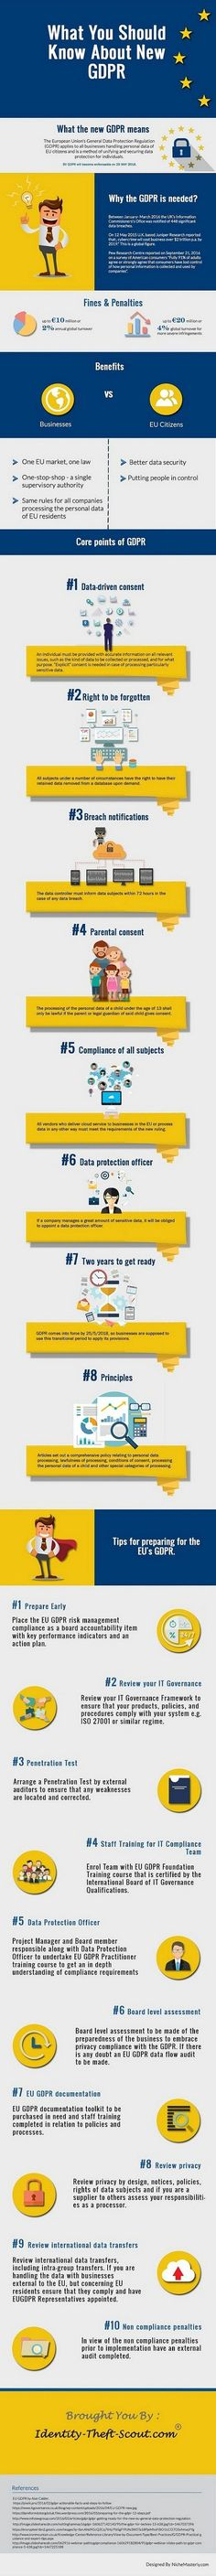 The new European Union General Data Protection Regulation (GDPR) will come into force by 25 May, This infographic has everything you need to know about the Available training resources: www. Data Protection Officer, General Data Protection Regulation, Computer Technology, Computer Science, Data Architecture, Small Business Management, Mba Degree, Reputation Management, Identity Theft